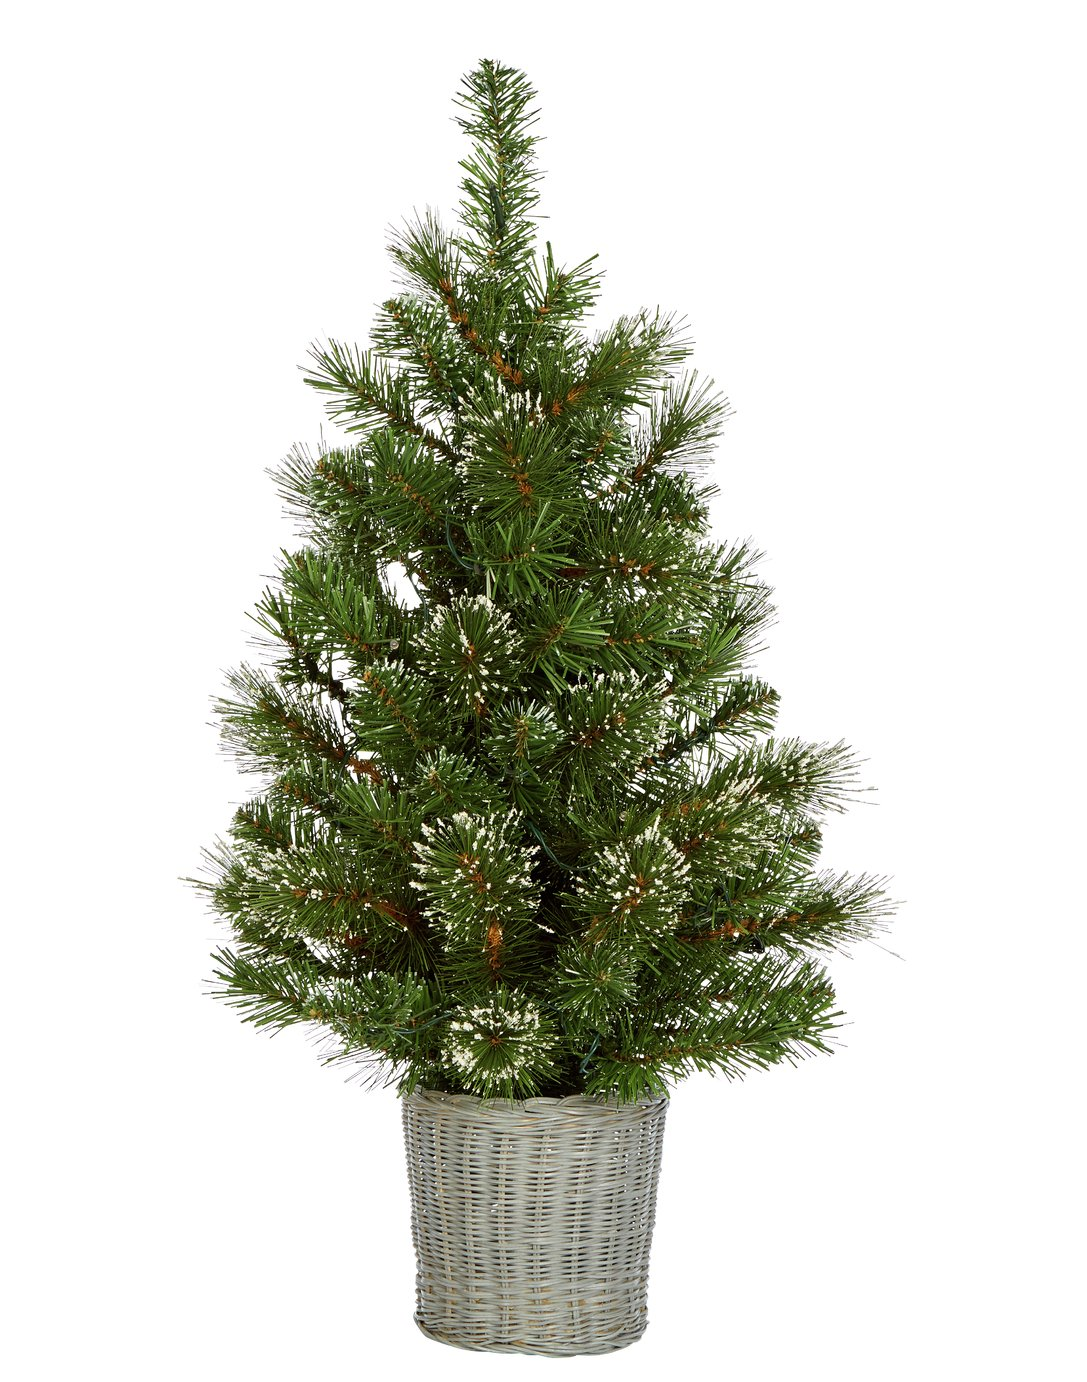 Argos Home 2.5ft Snowy Tree with Warm White Lights & Basket